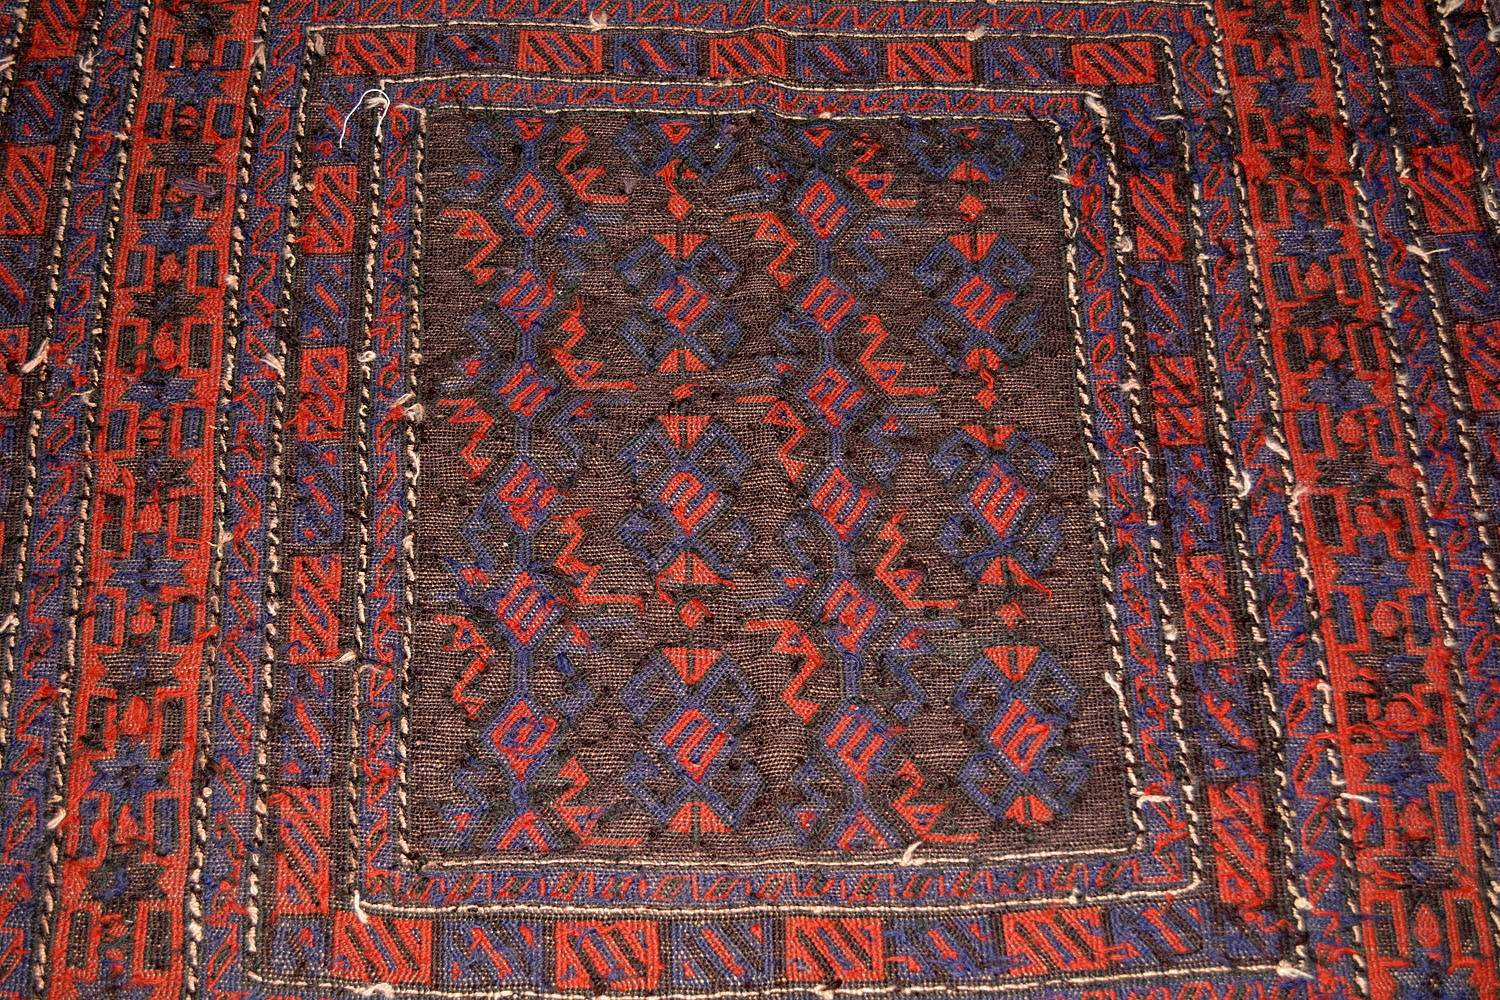 Star Border Handmade Kilim Carpet At Best Price Online